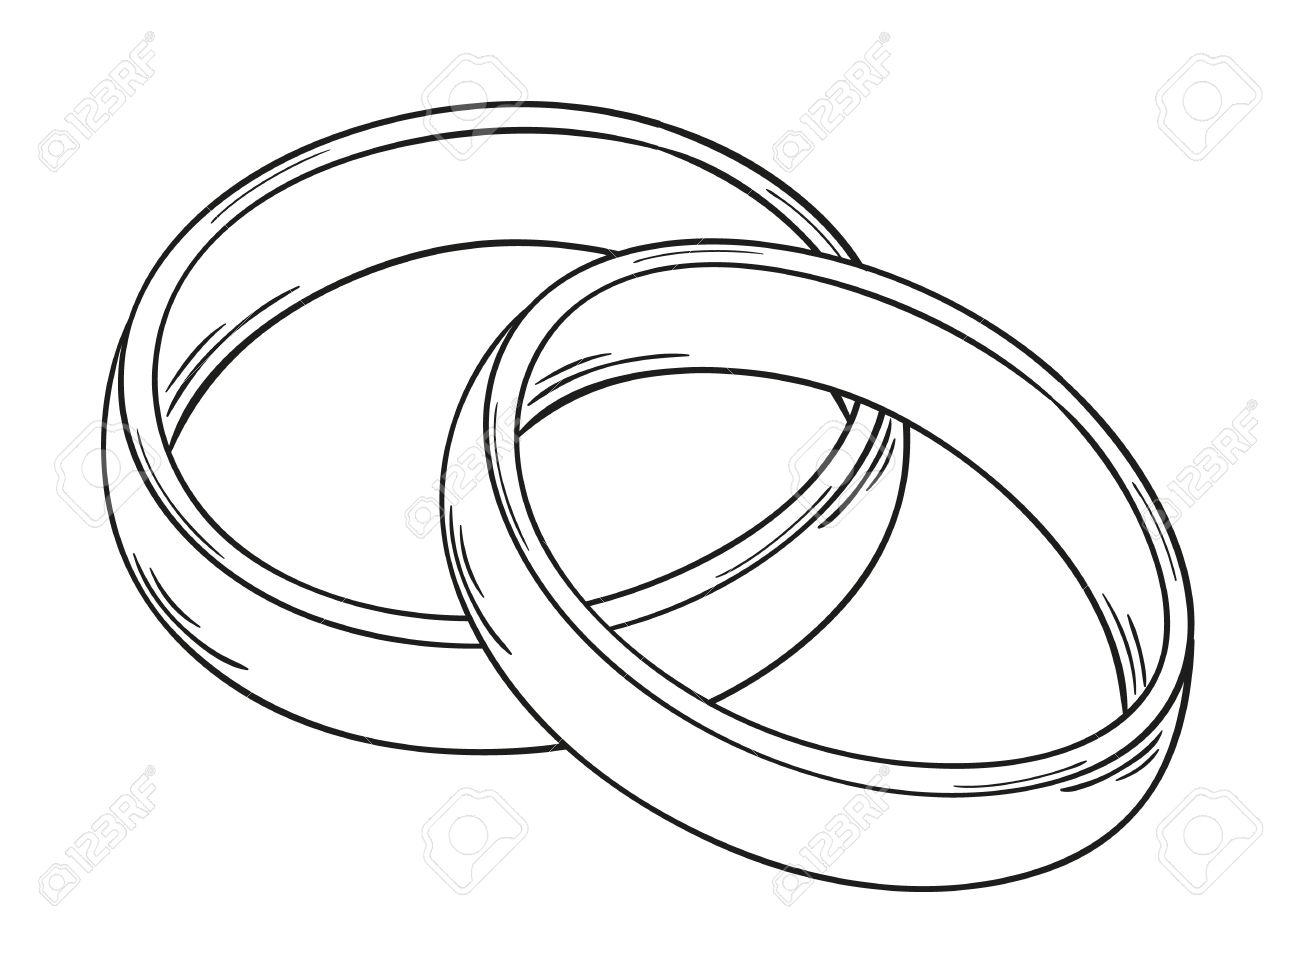 1300x973 Rings Wedding Rings Clipart Wedding Bells Clipart Wedding